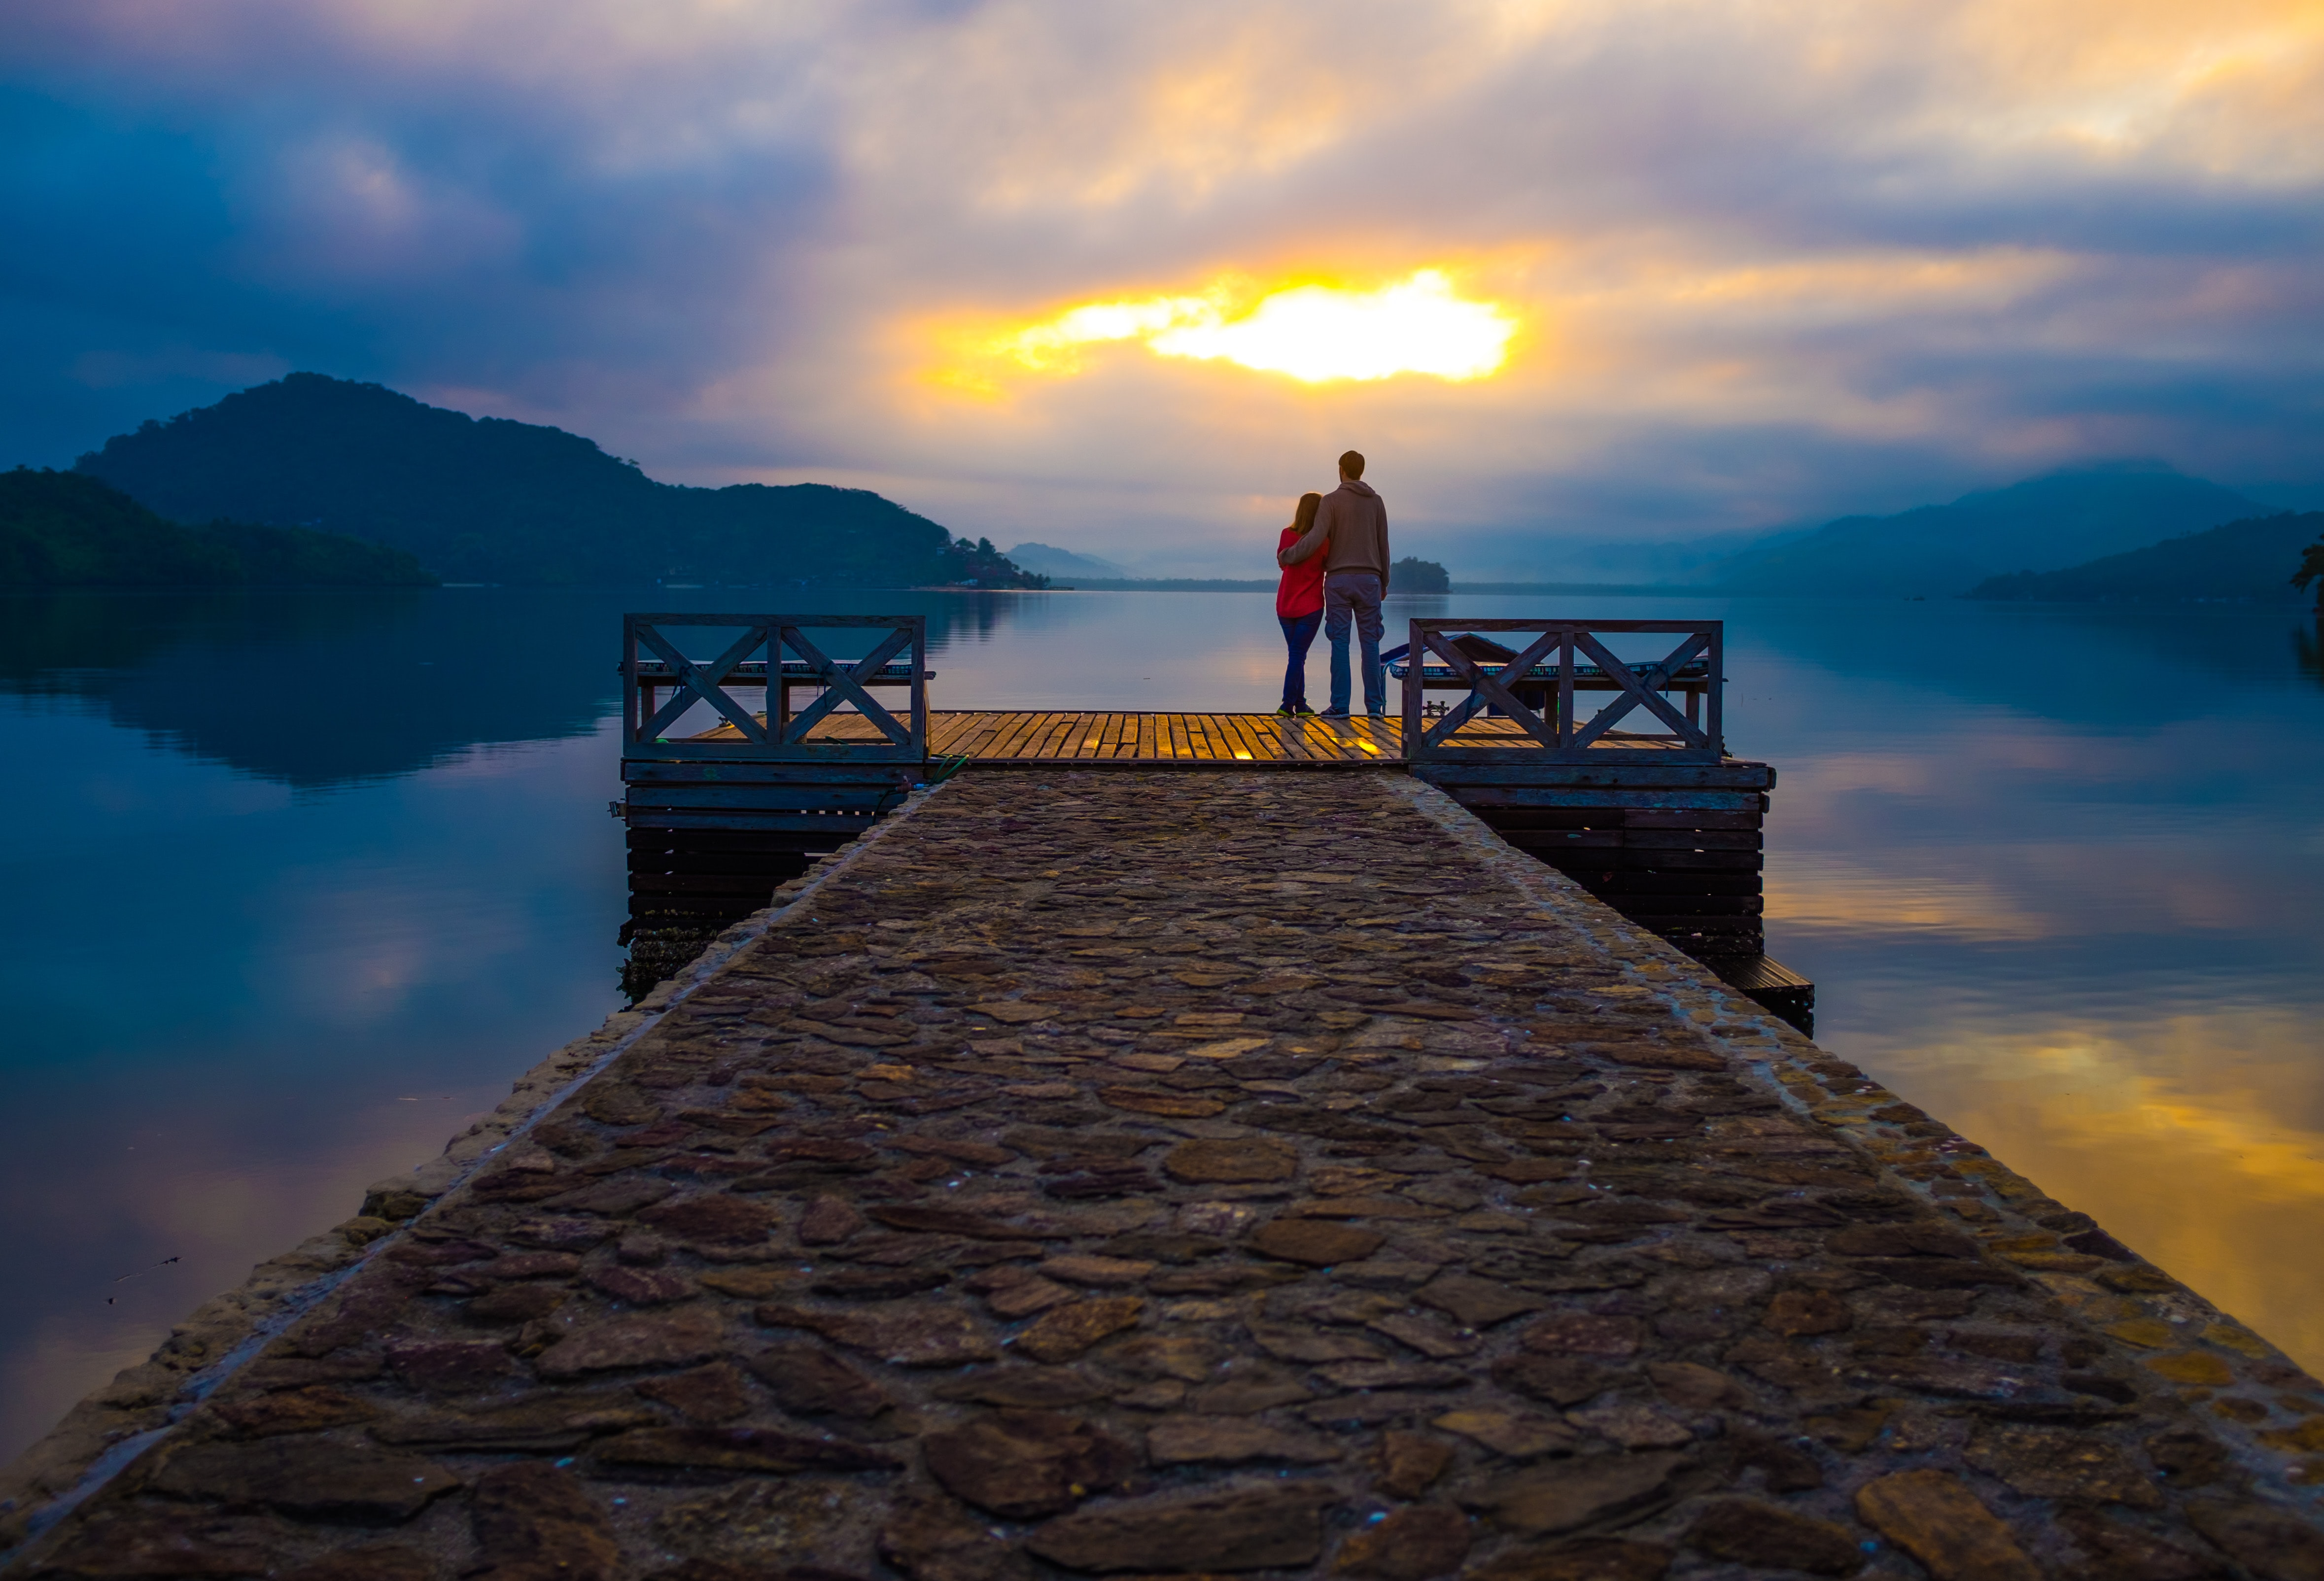 500 Sunset Couple Pictures Stunning Download Free Images On